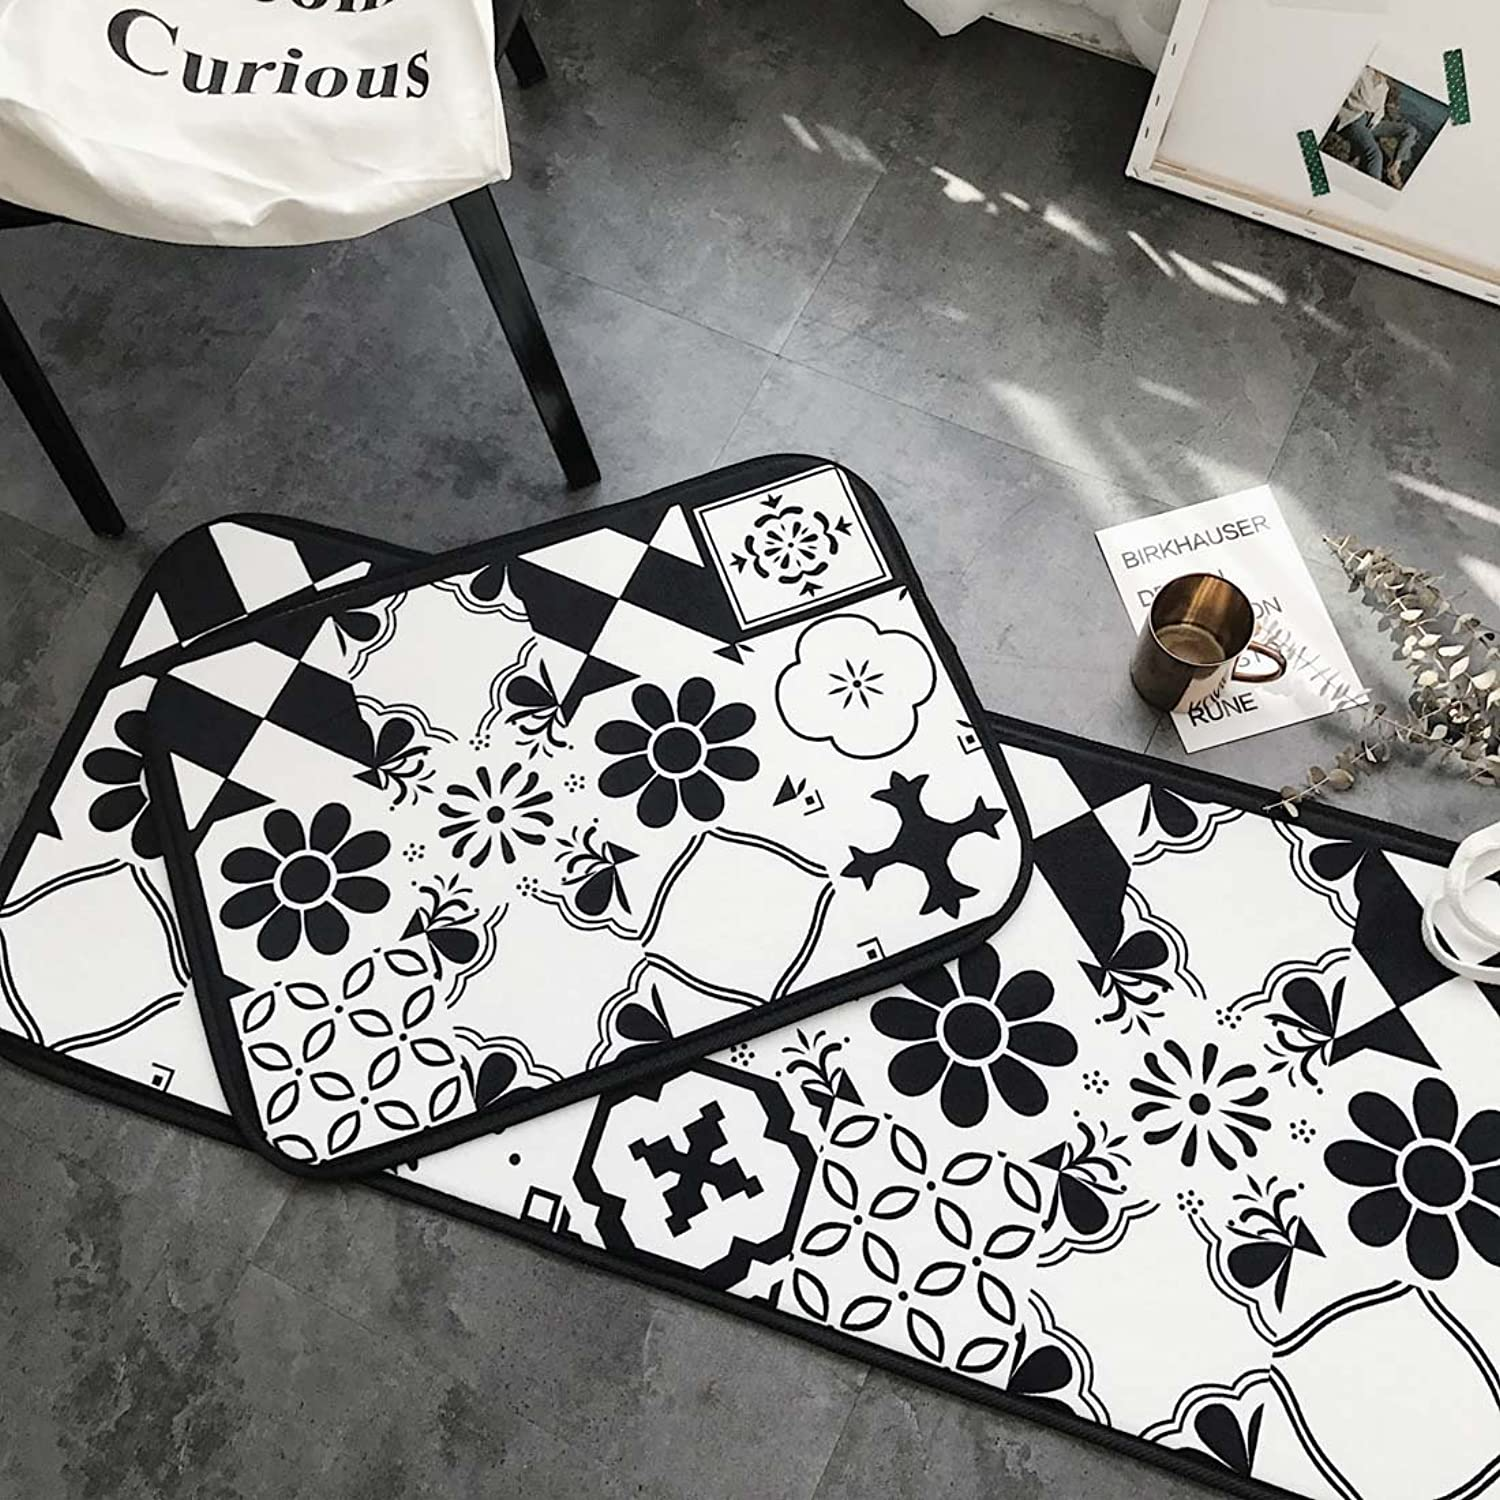 Babe MAPS Indoor Outdoor 2PCS Doormat Entrance Welcome Mat Absorbent Runner Inserts Non Slip Entry Rug Funny Mosaic Bricks Pattern, Home Decor Inside shoes Scraper Floor Carpet 19 x27  19 x58